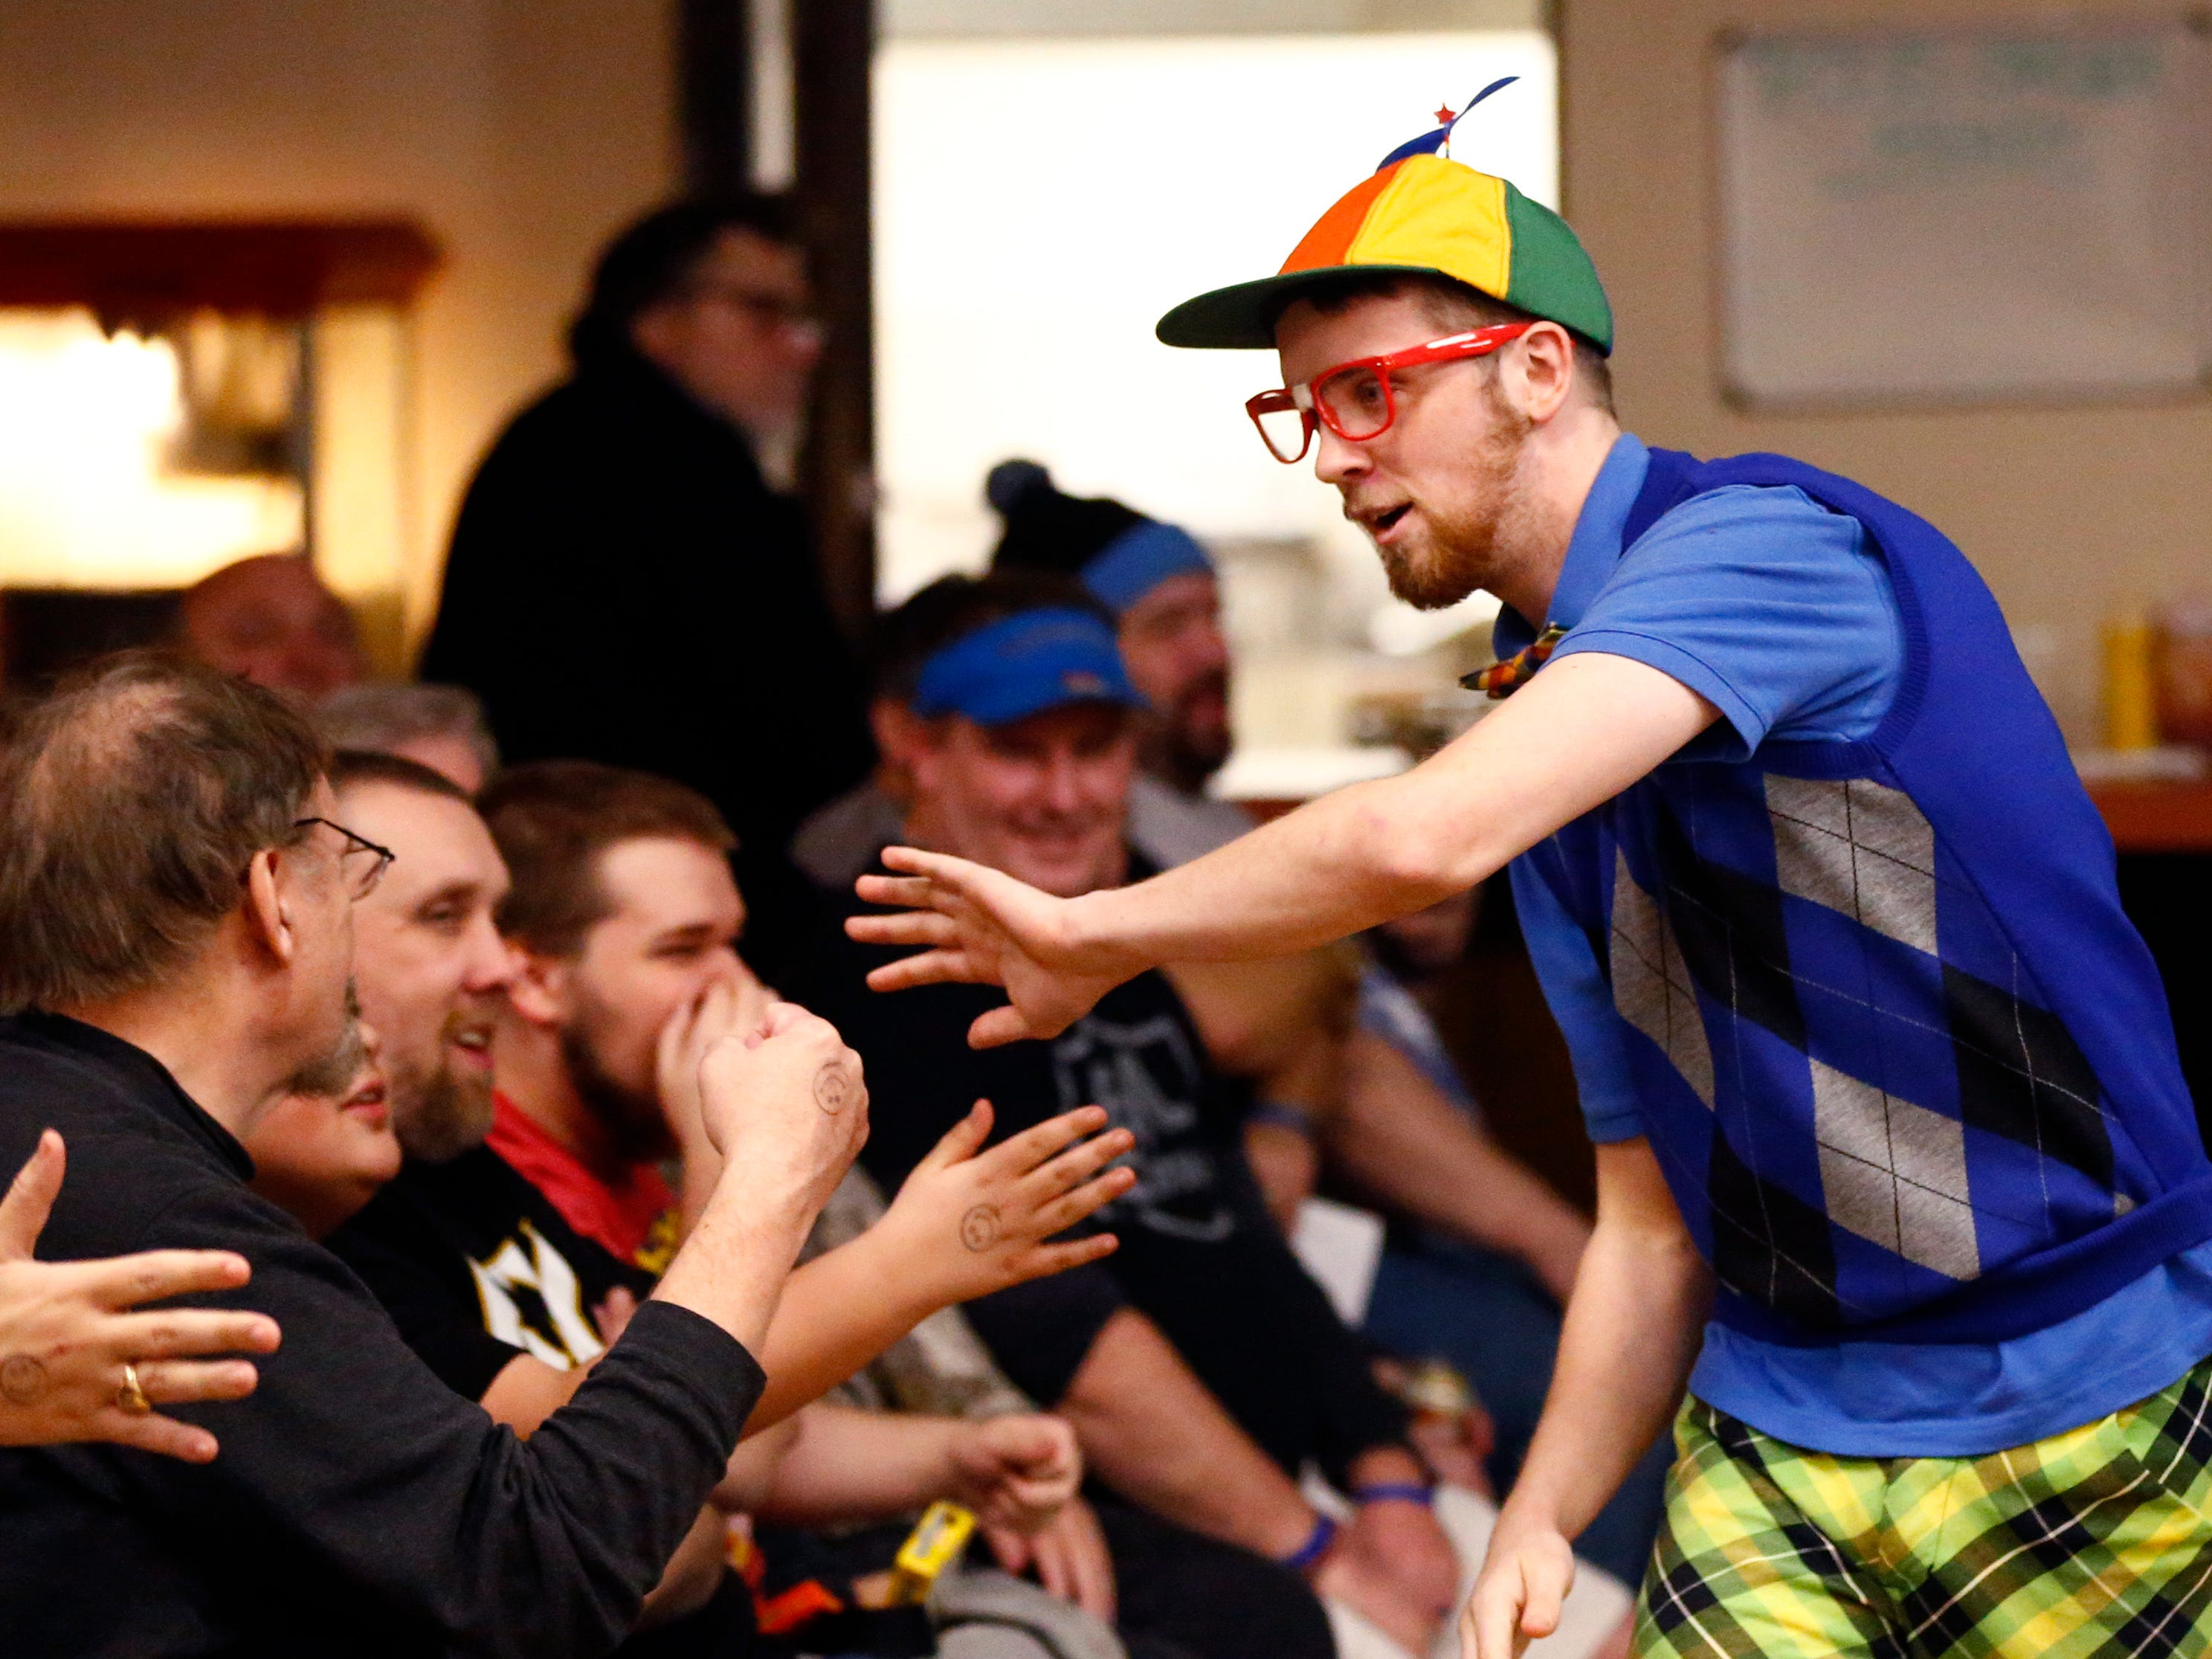 """Lou Zhur greets the crowd before the start of his match with Angel Armani during the Brew City Wrestling """"Rise To Honor XV- 15 Years of FAN-demonium"""" event at the Waukesha Elks Lodge on Jan. 11 that featured seven matches during the evening."""